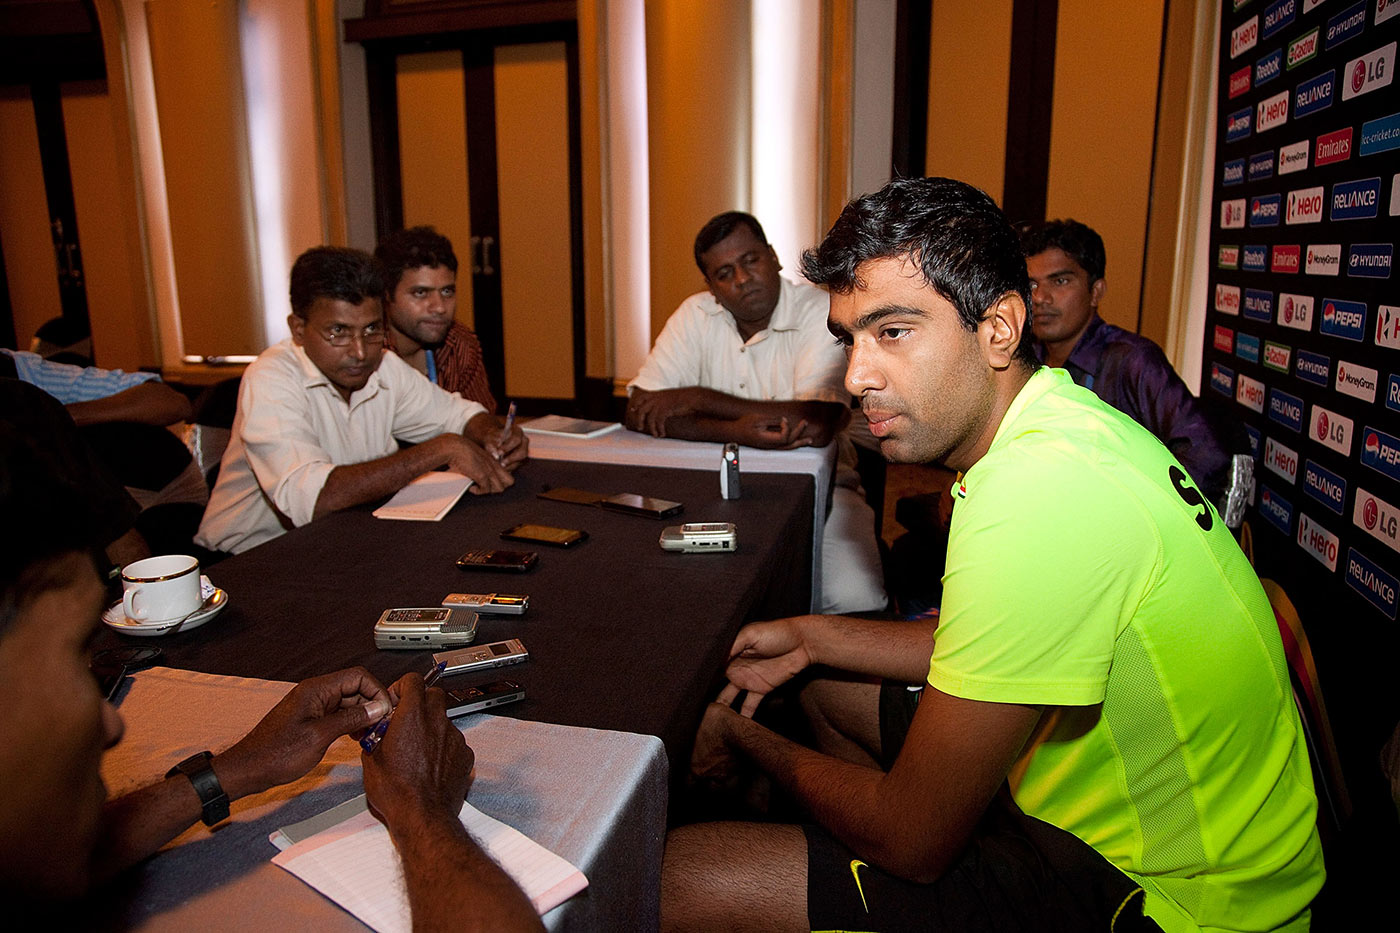 Smoother operator: Ashwin has grown out of a phase where he was prickly and defensive with the media